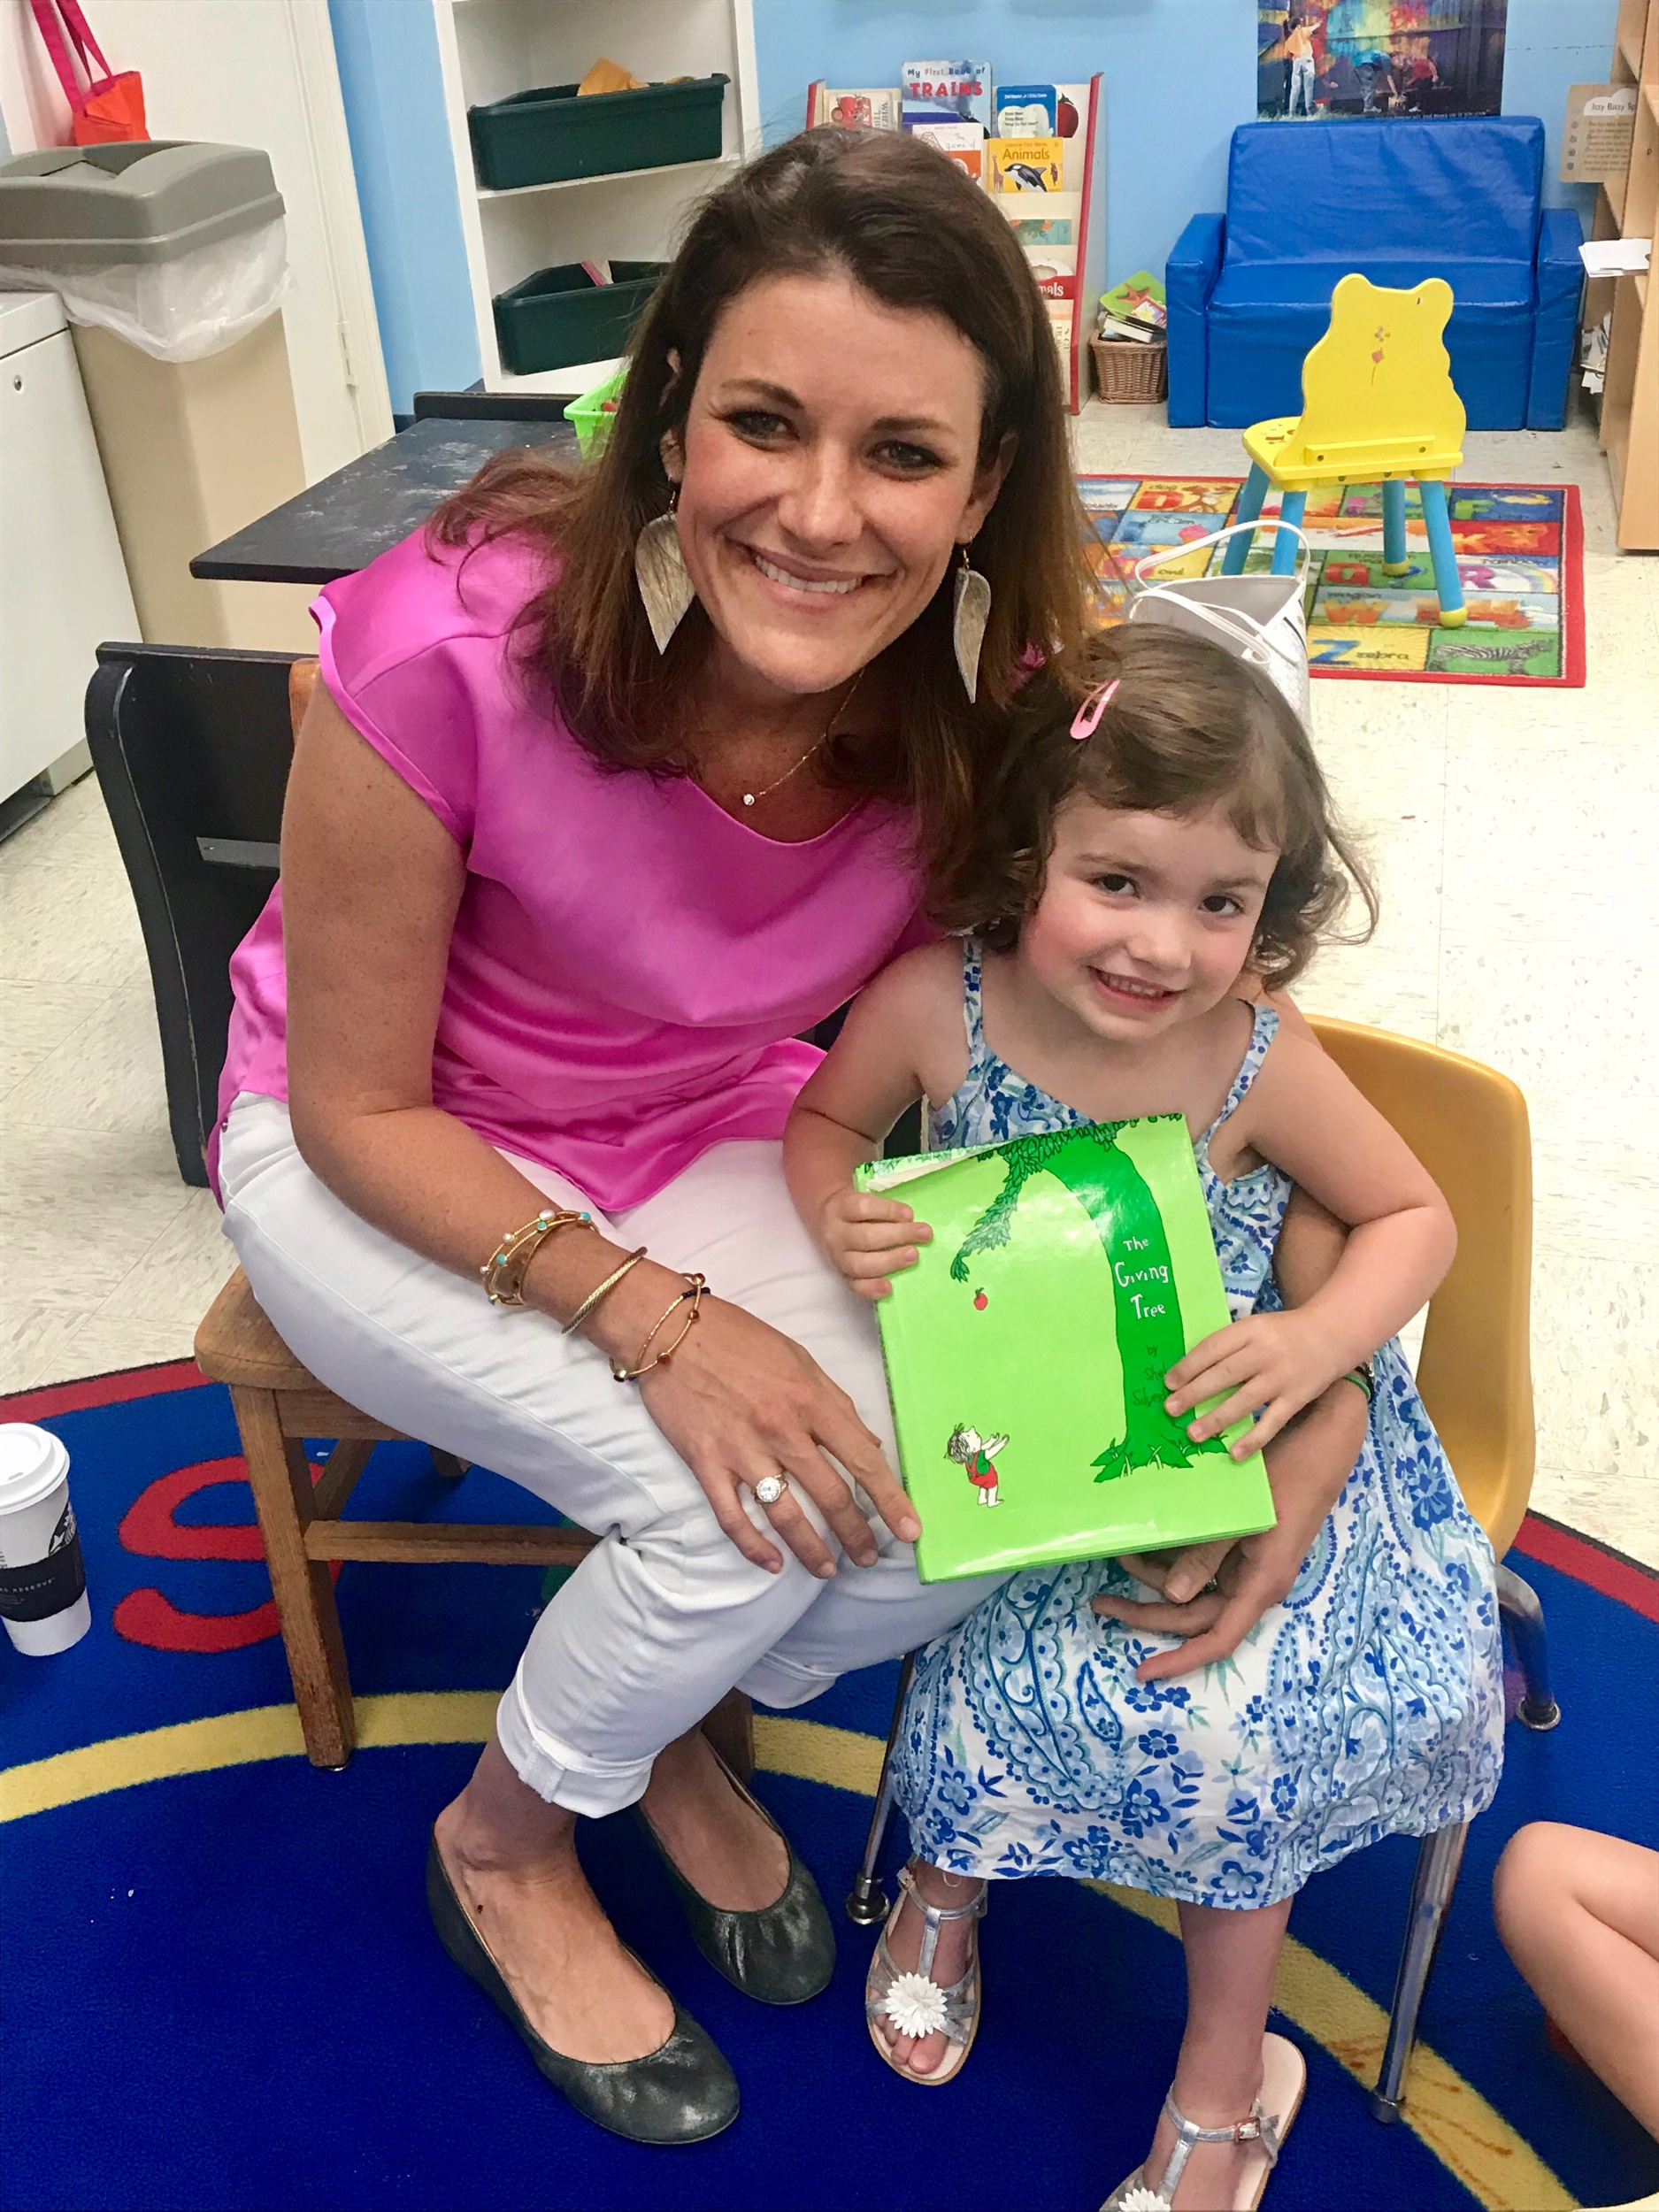 Annabelle's mom was also able to be a Mystery Reader this week too!